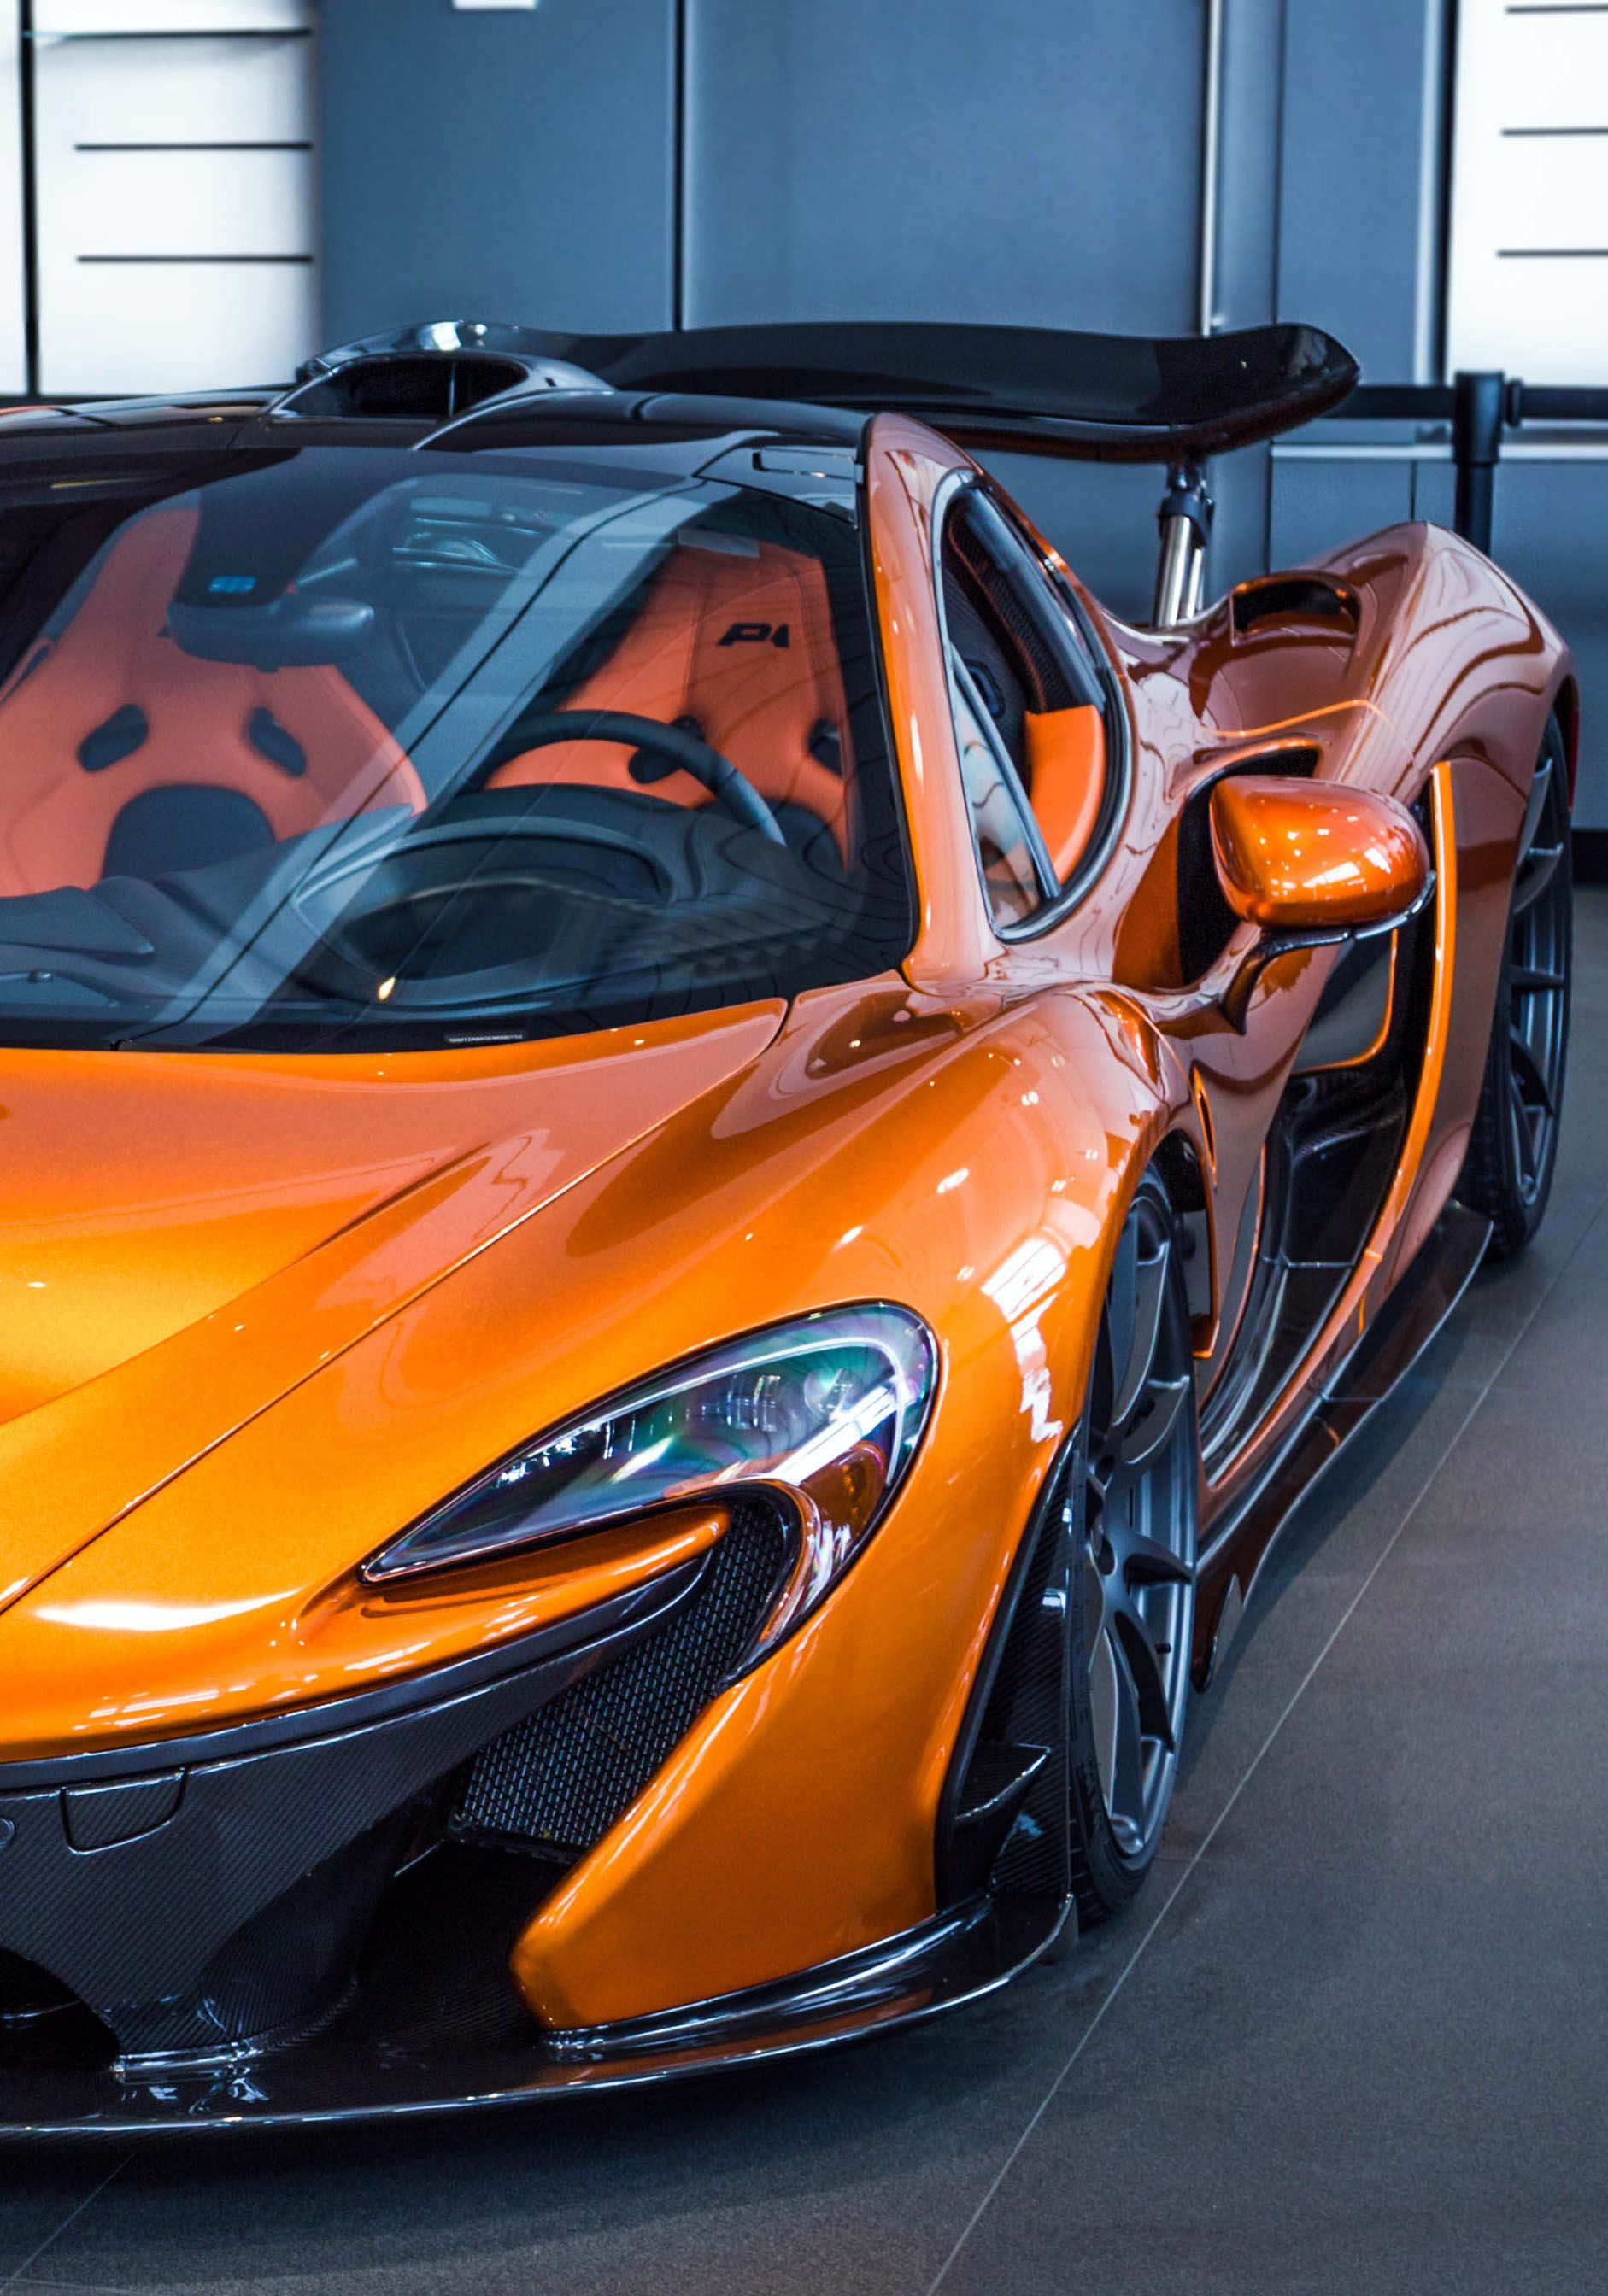 Lumia Orange MSO Mclaren P1 Rouble double Pinterest